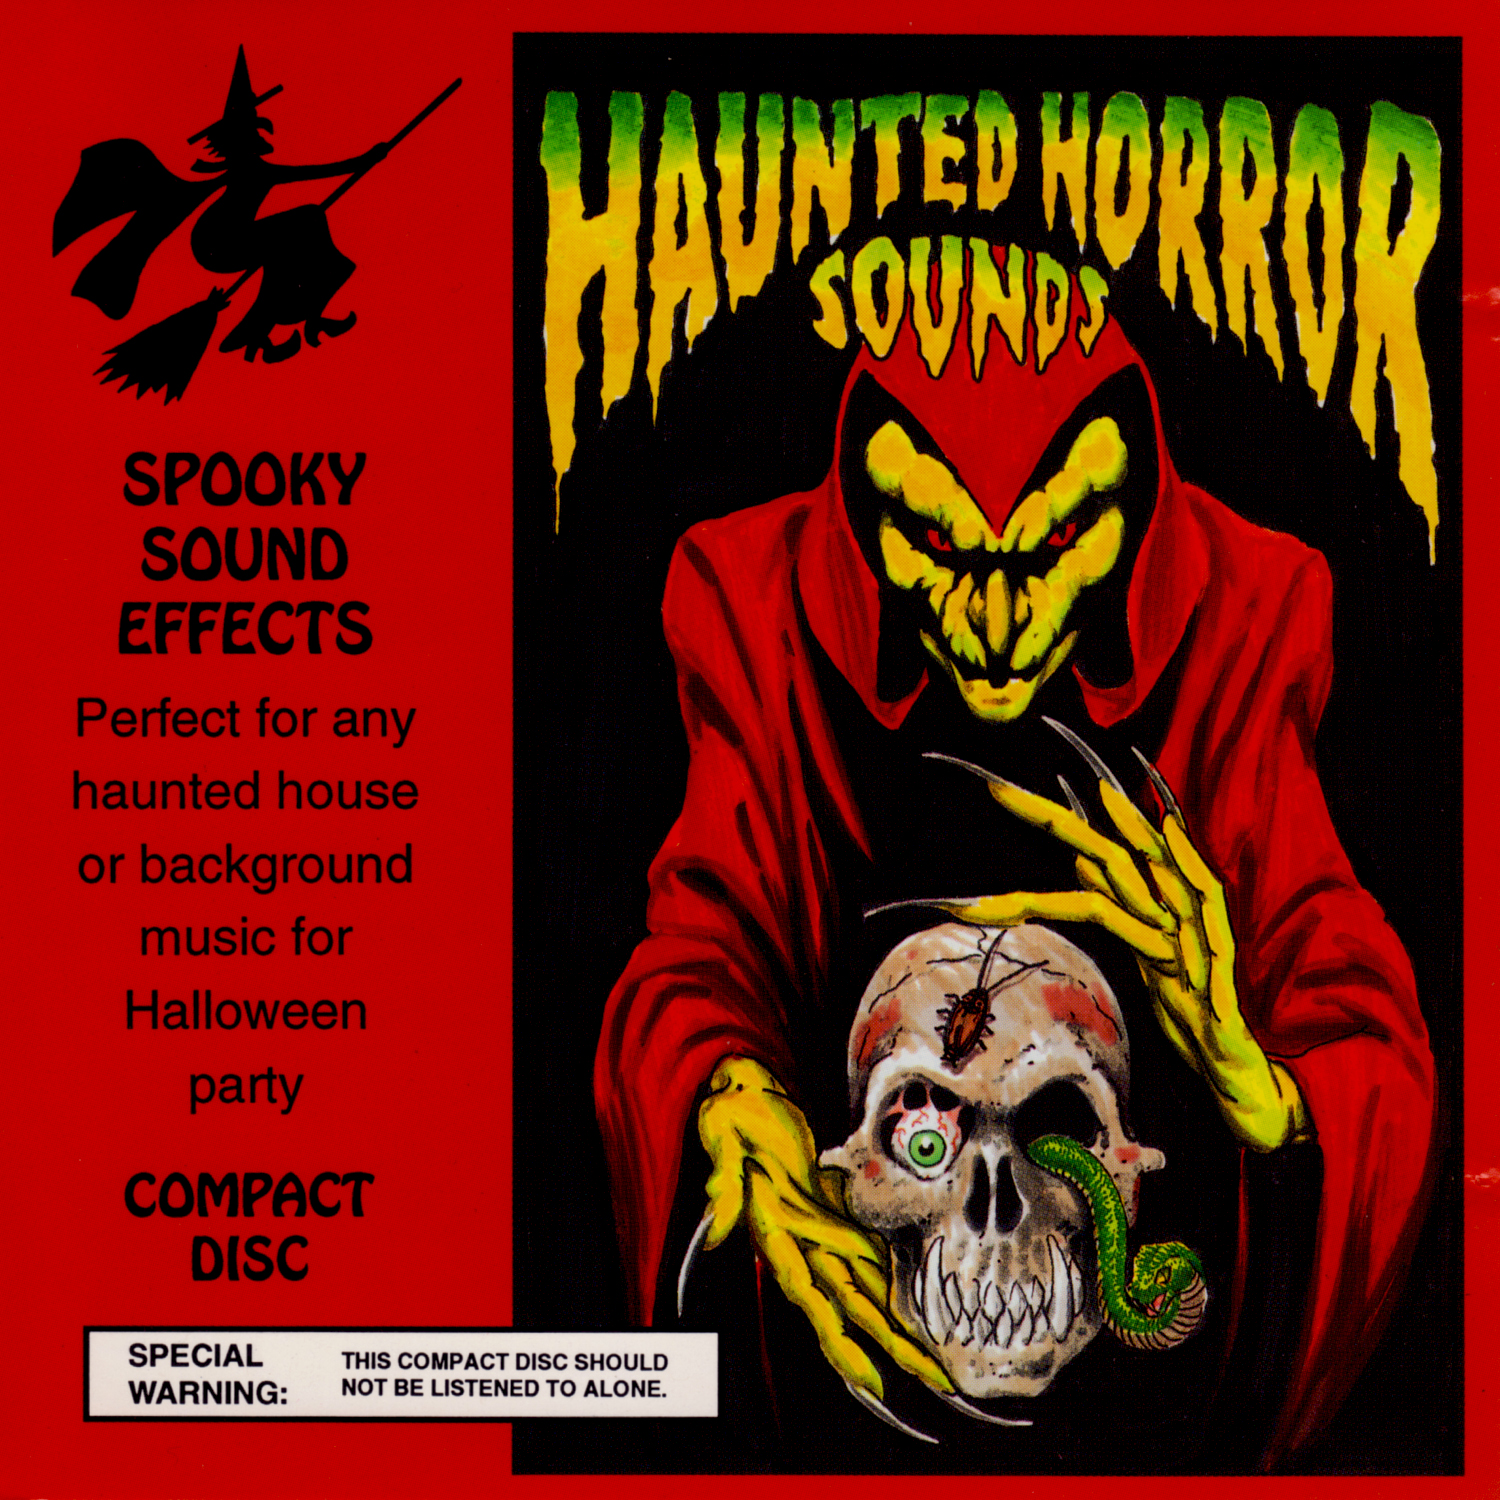 Haunted horror sounds